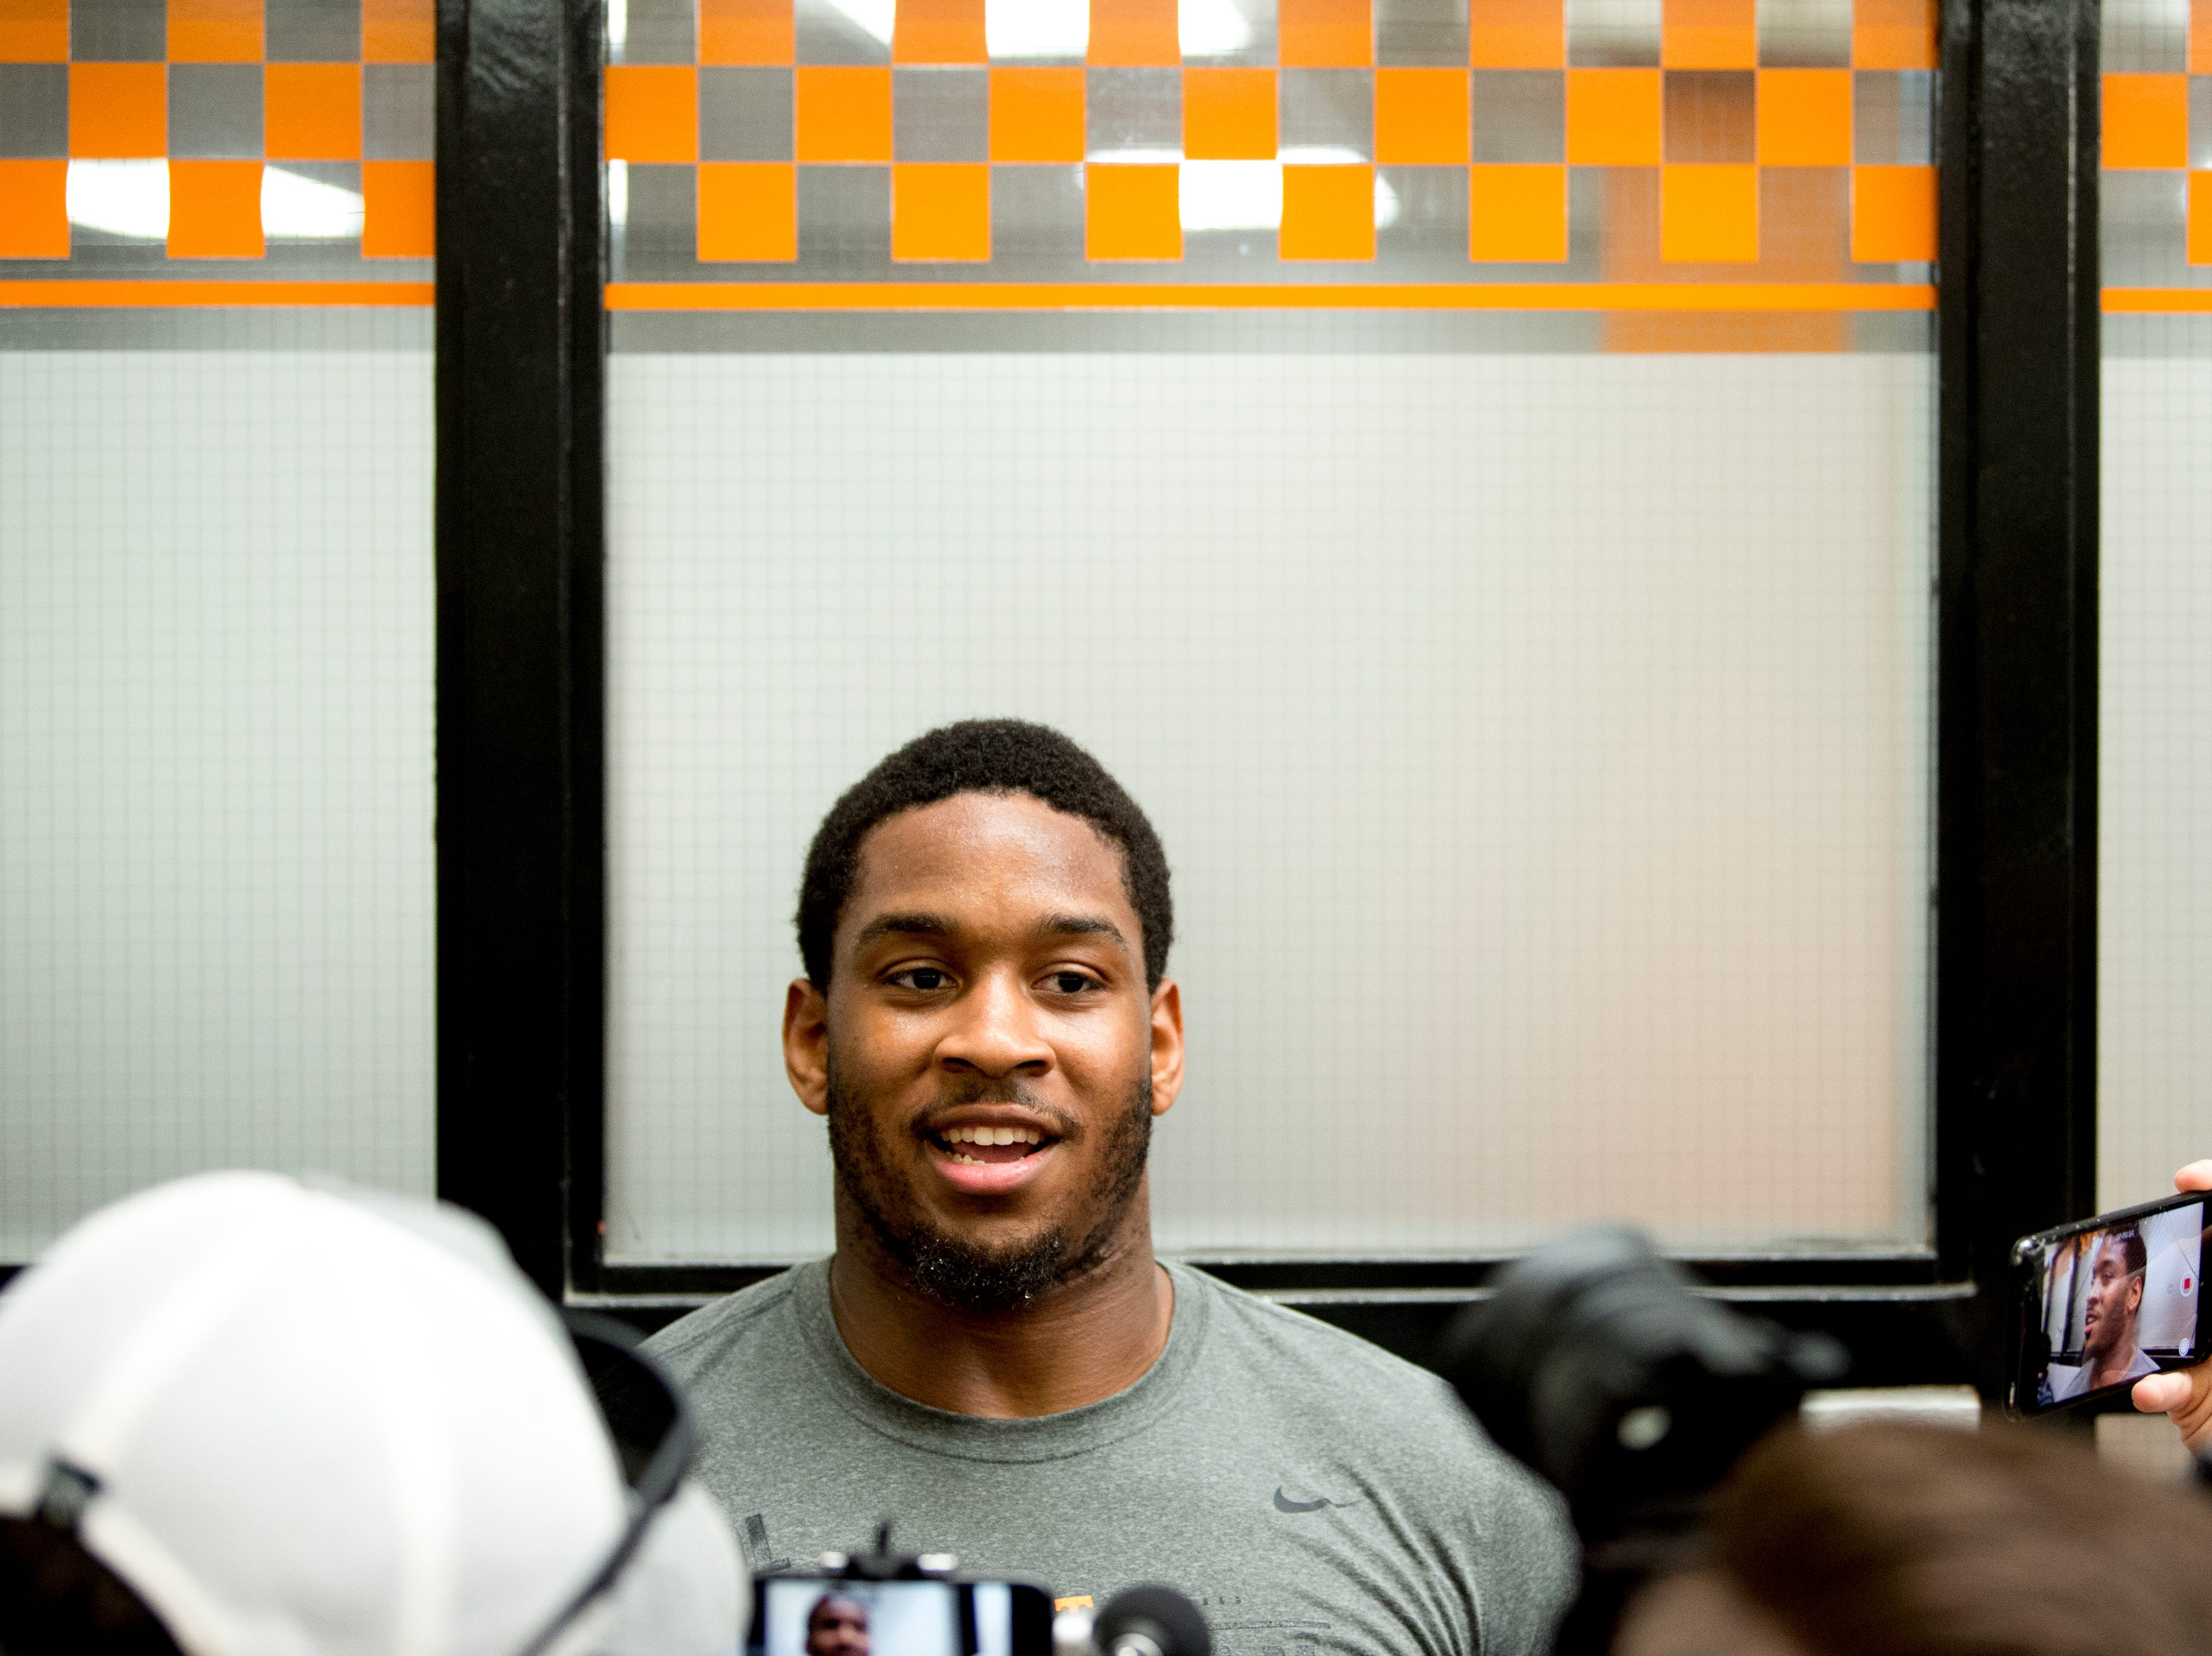 Kyle Phillips speaks with the media at Tennessee Pro Day at Anderson Training Facility in Knoxville, Tennessee on Thursday, March 14, 2019. Draft prospects from Tennessee and other schools worked out before NFL scouts.